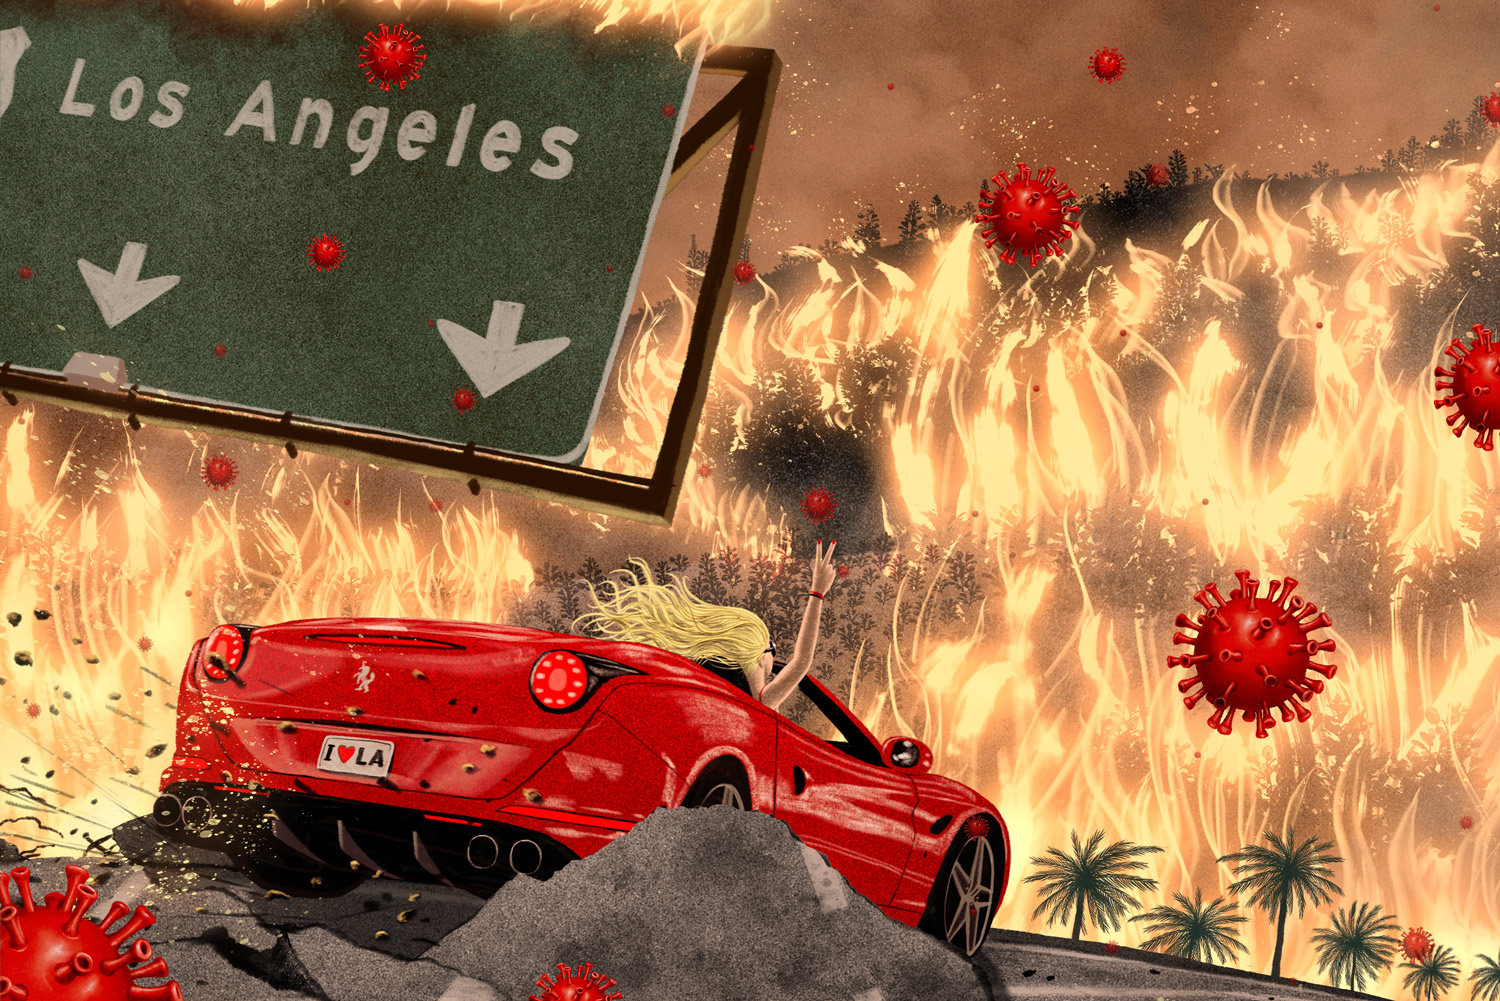 los angeles on fire